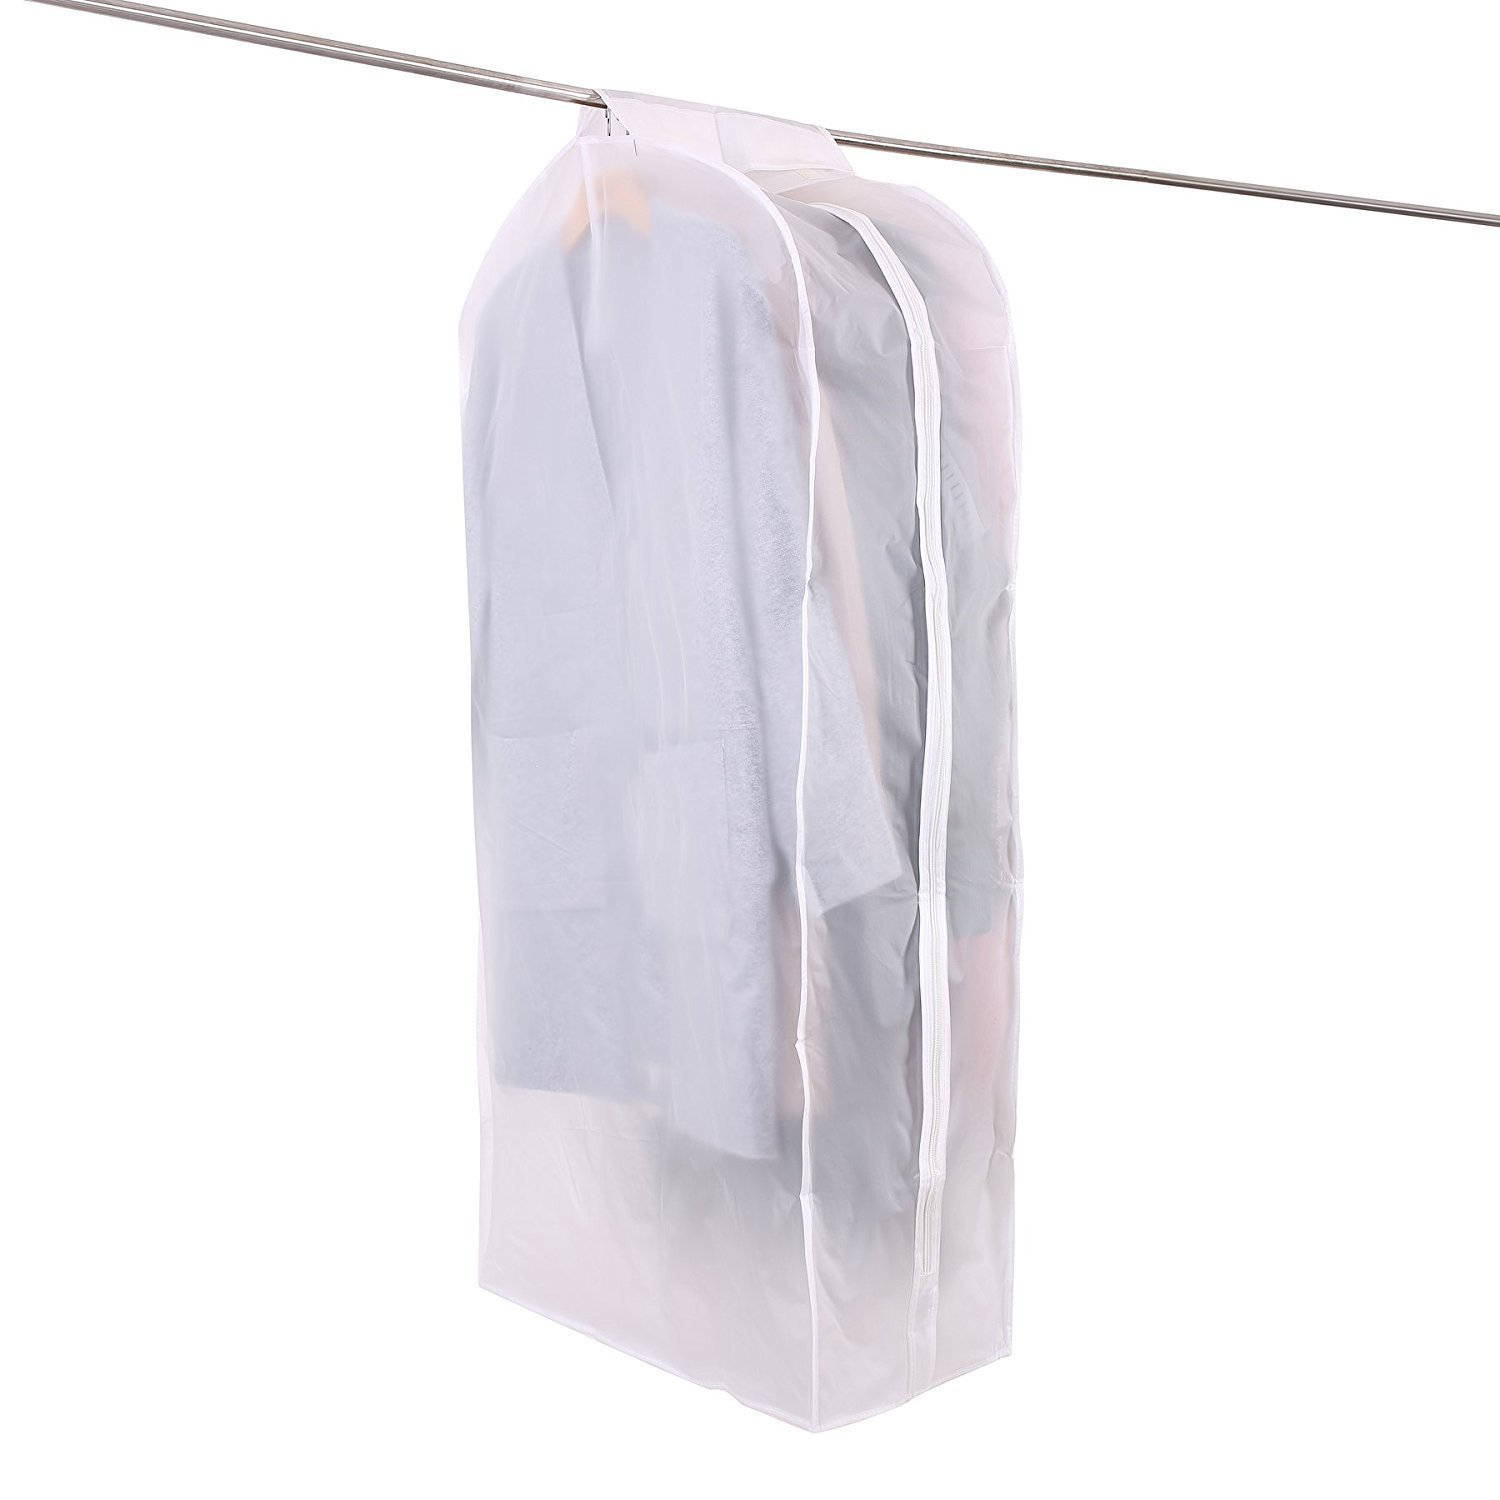 Clothes Hanging Garment Cover Garment Bag Breathable in Closet Cabinet, 43.31'' Clear Wardrobe Clothing Storage Protectors Dustproof Hanging Bag with Full Zipper Magic Tape for Suit Dress by CulturePRN